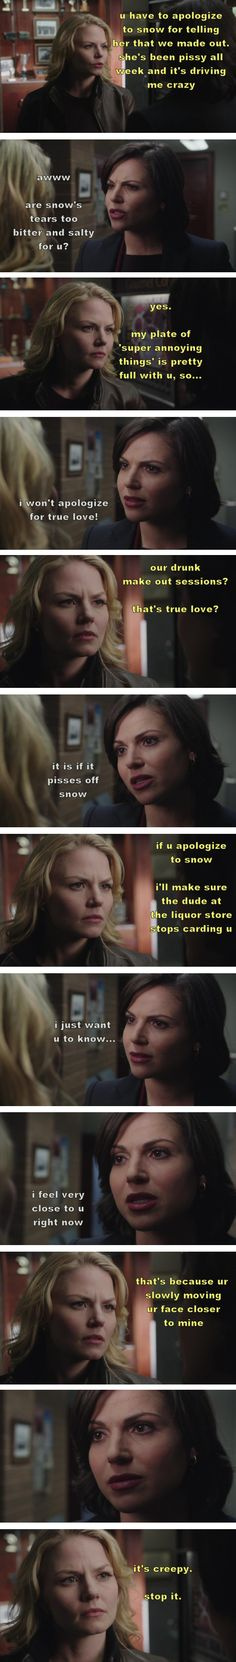 Drunk!Regina  never apologize for true love  part 68.  (source: thelast-thingido)